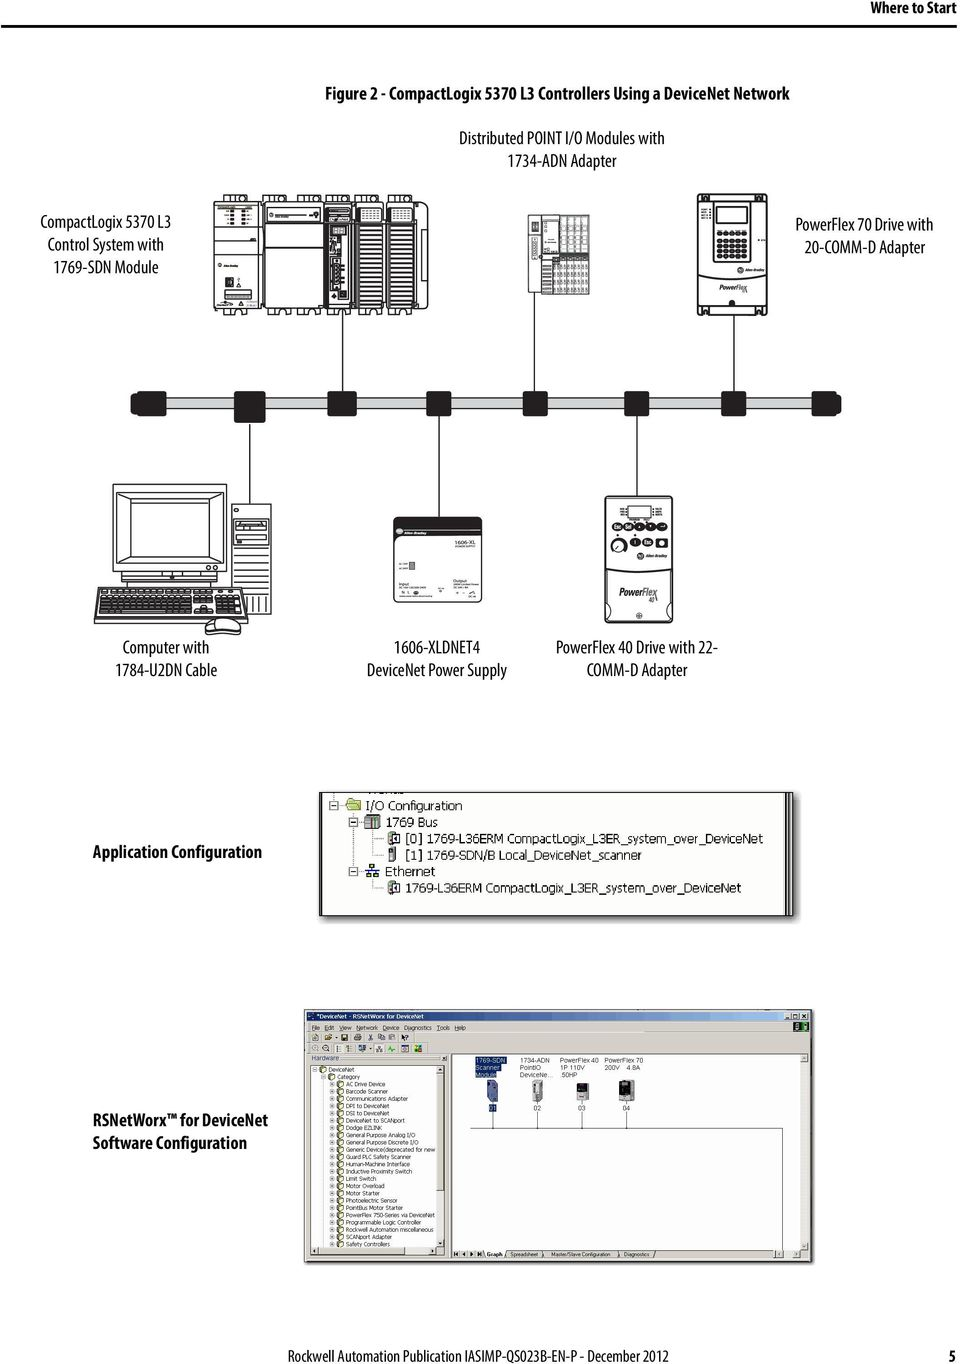 hight resolution of 2 rear computer with 1784 u2dn cable 1606 xldnet4 devicenet power supply